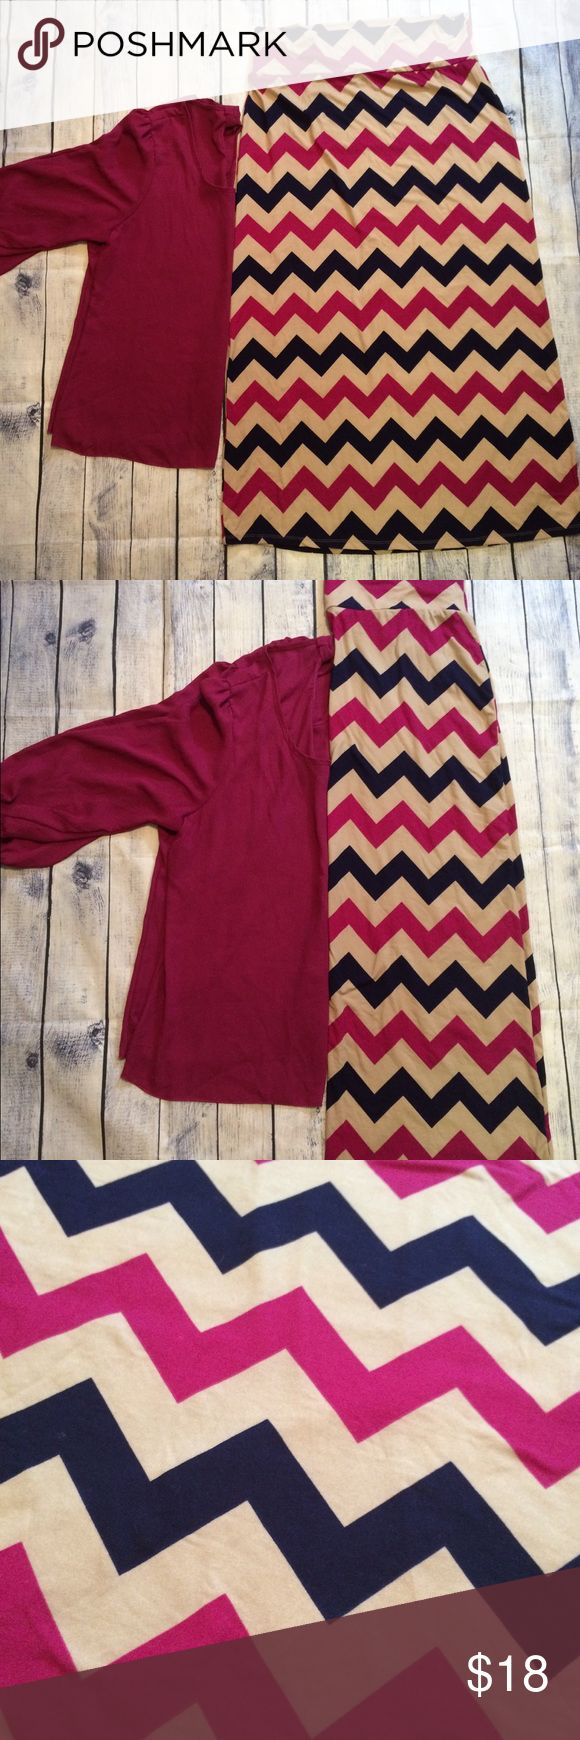 Brushed chevron maxi skirt plus 2x nwot wine navy New without tags! Chevron print in wine, navy blue, and tan or dark cream. Matching blouse in my closet! Size 2x. Soft stretchy brushed fabric maxi skirt. Make me an offer! 20% off all bundles! Rue21 Skirts Maxi